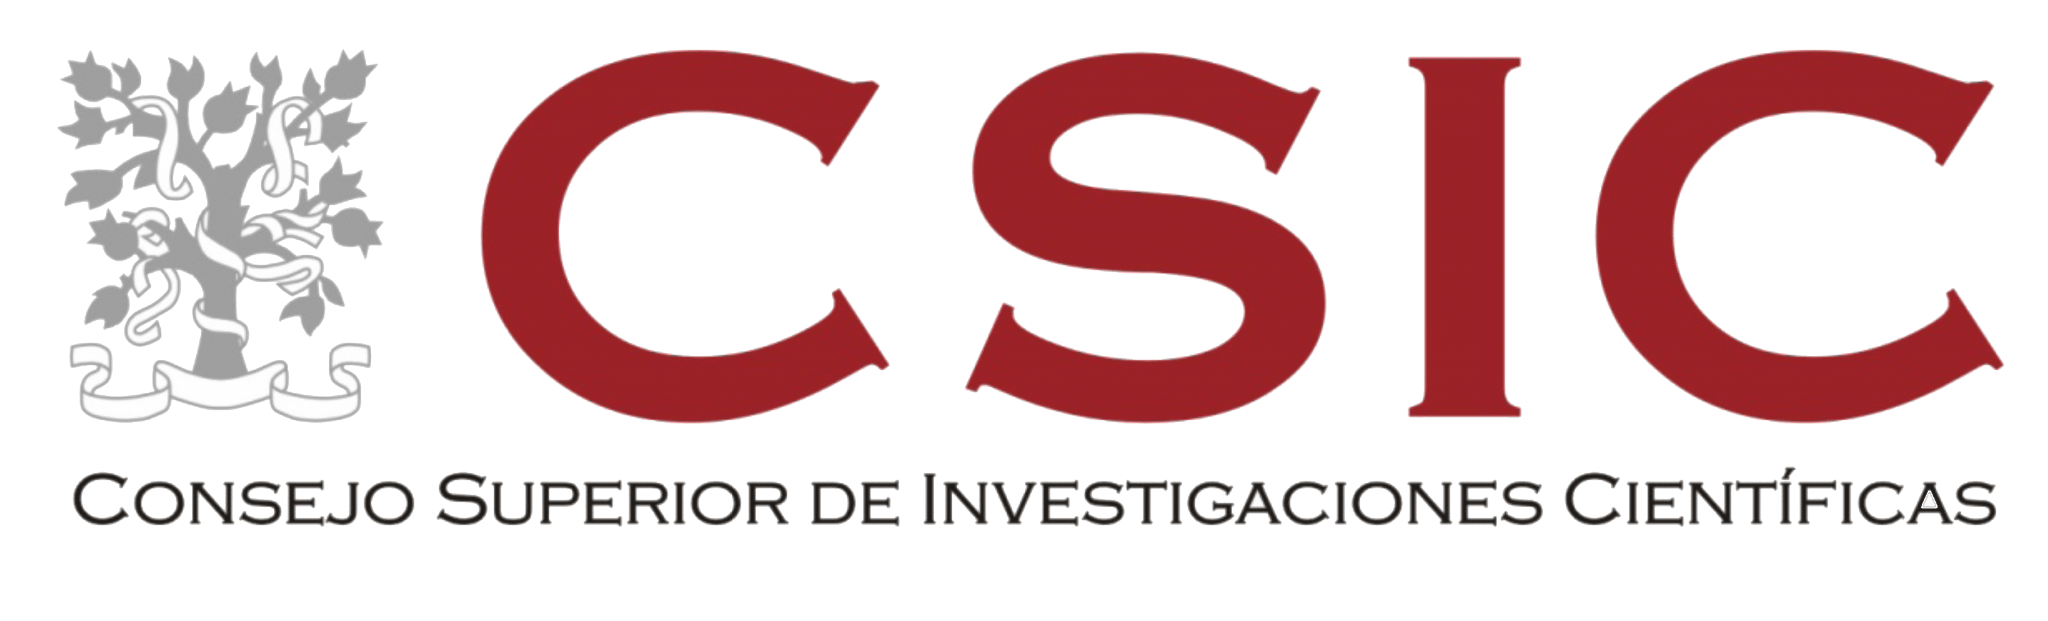 CSIC_logo copy